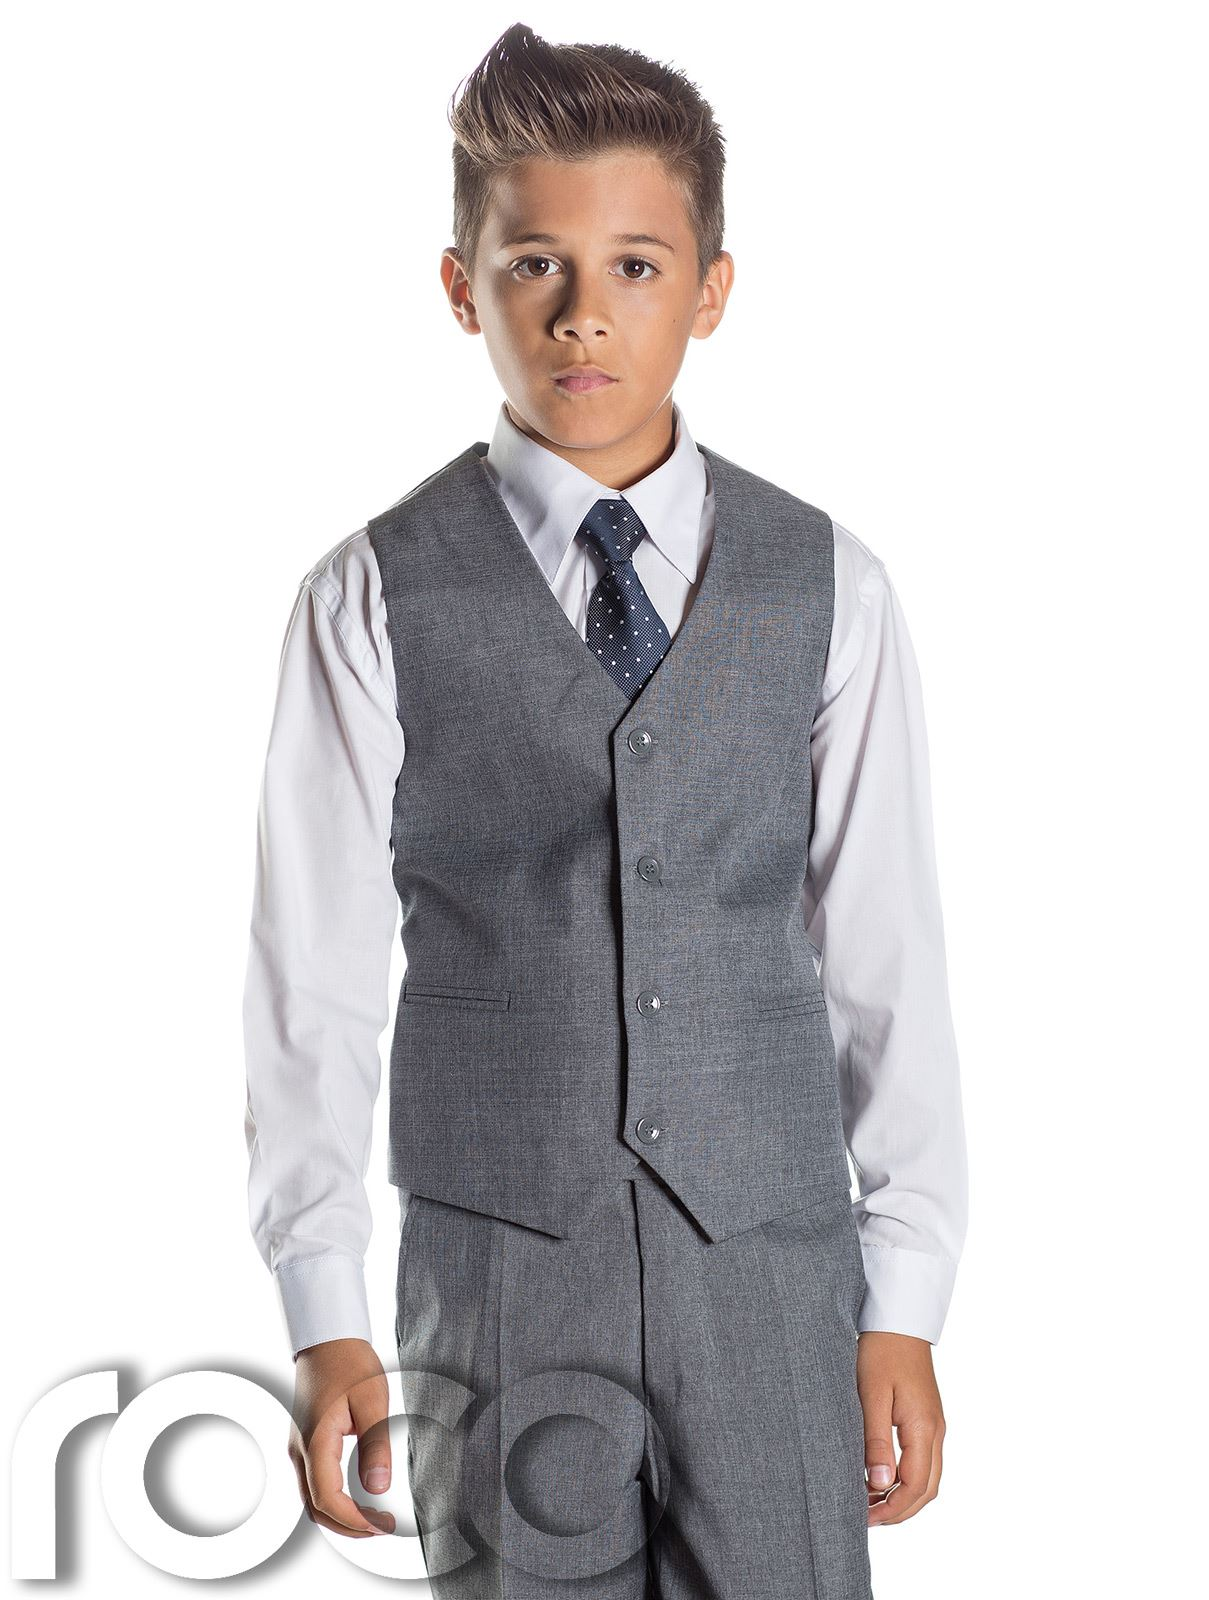 boys suit boys-slim-fit-suit-navy-suit-grey-suit- pytxblm